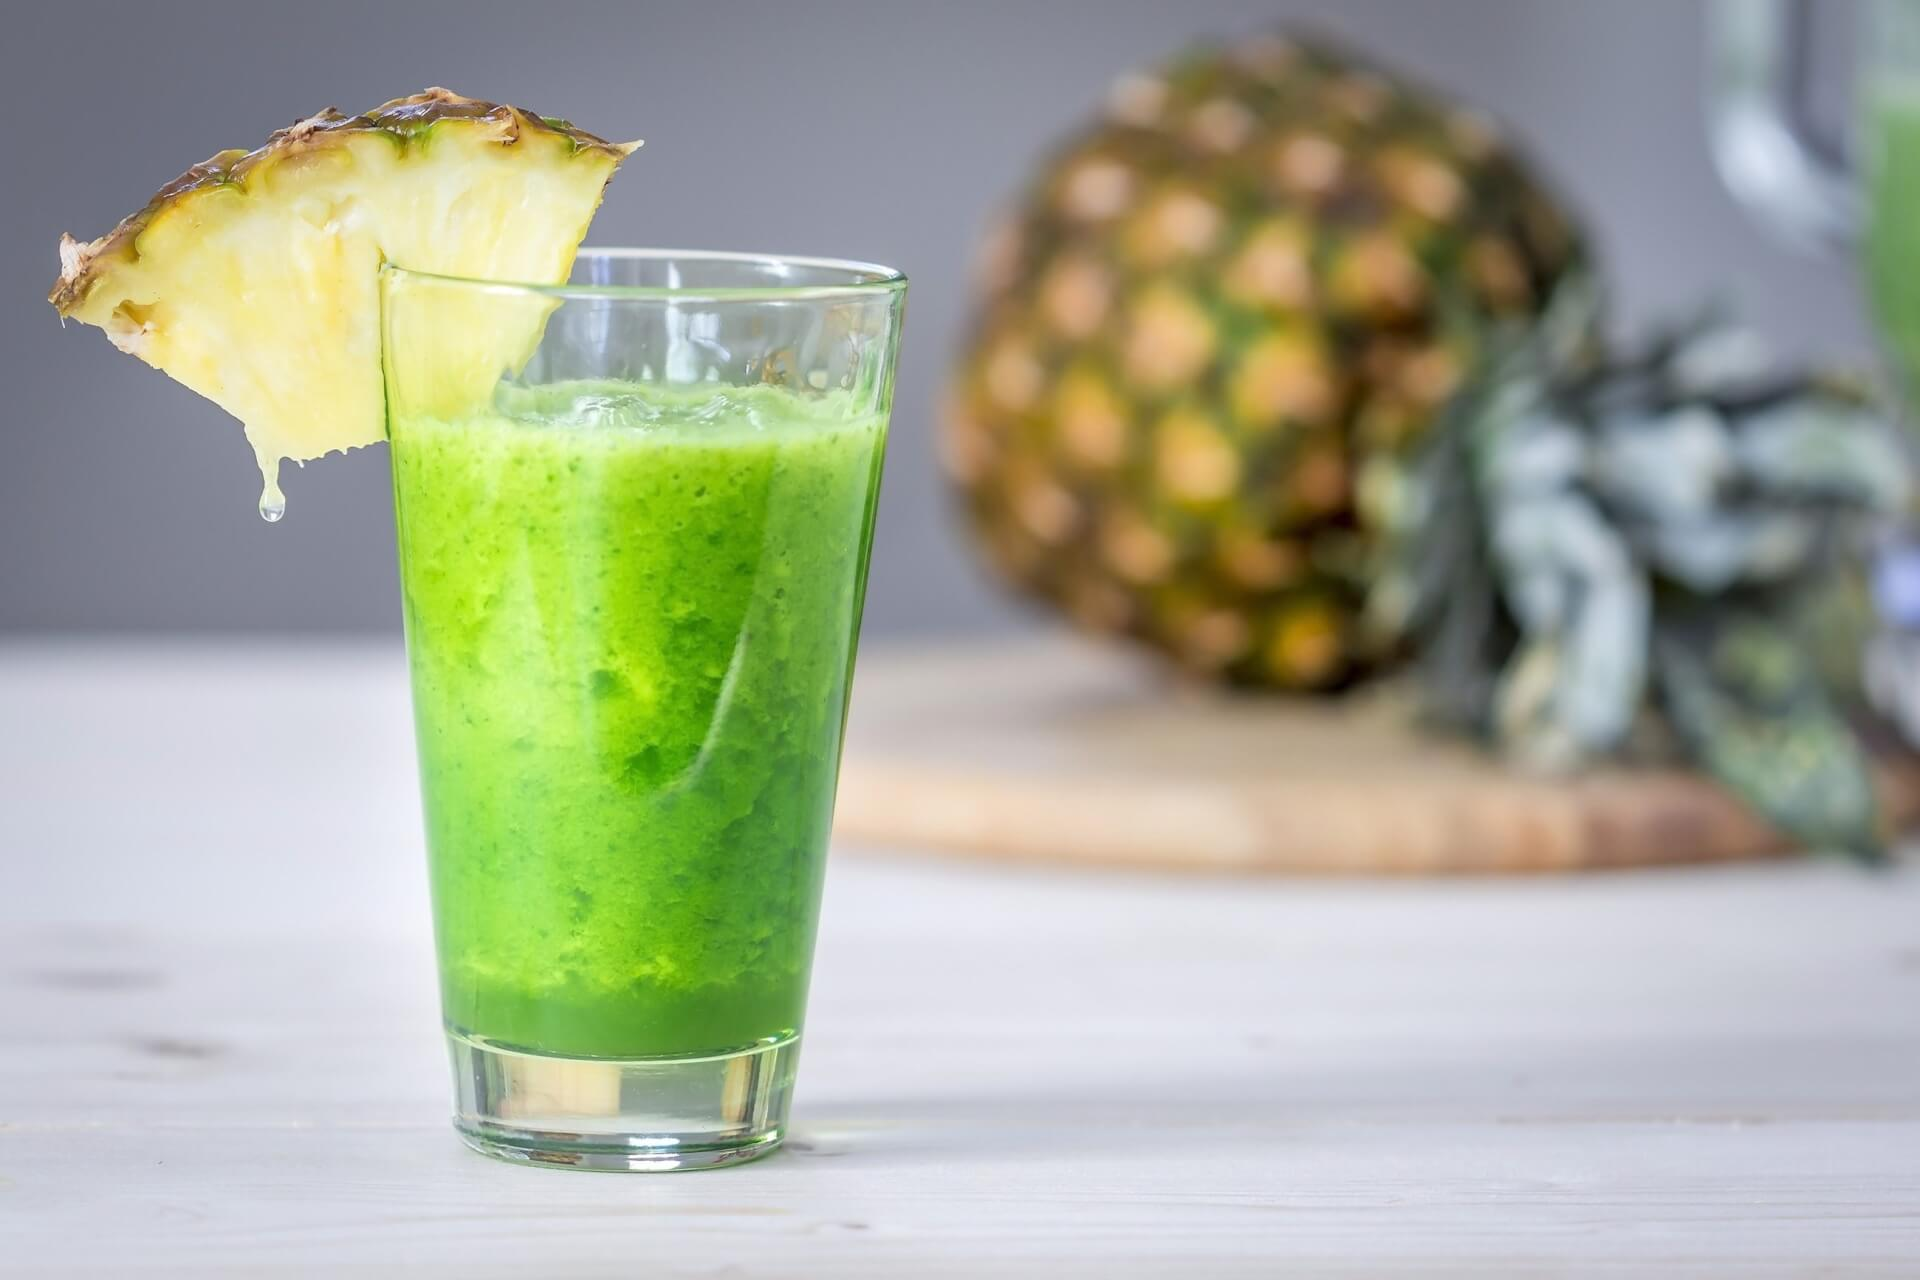 Avocado Pineapple Smoothie Image